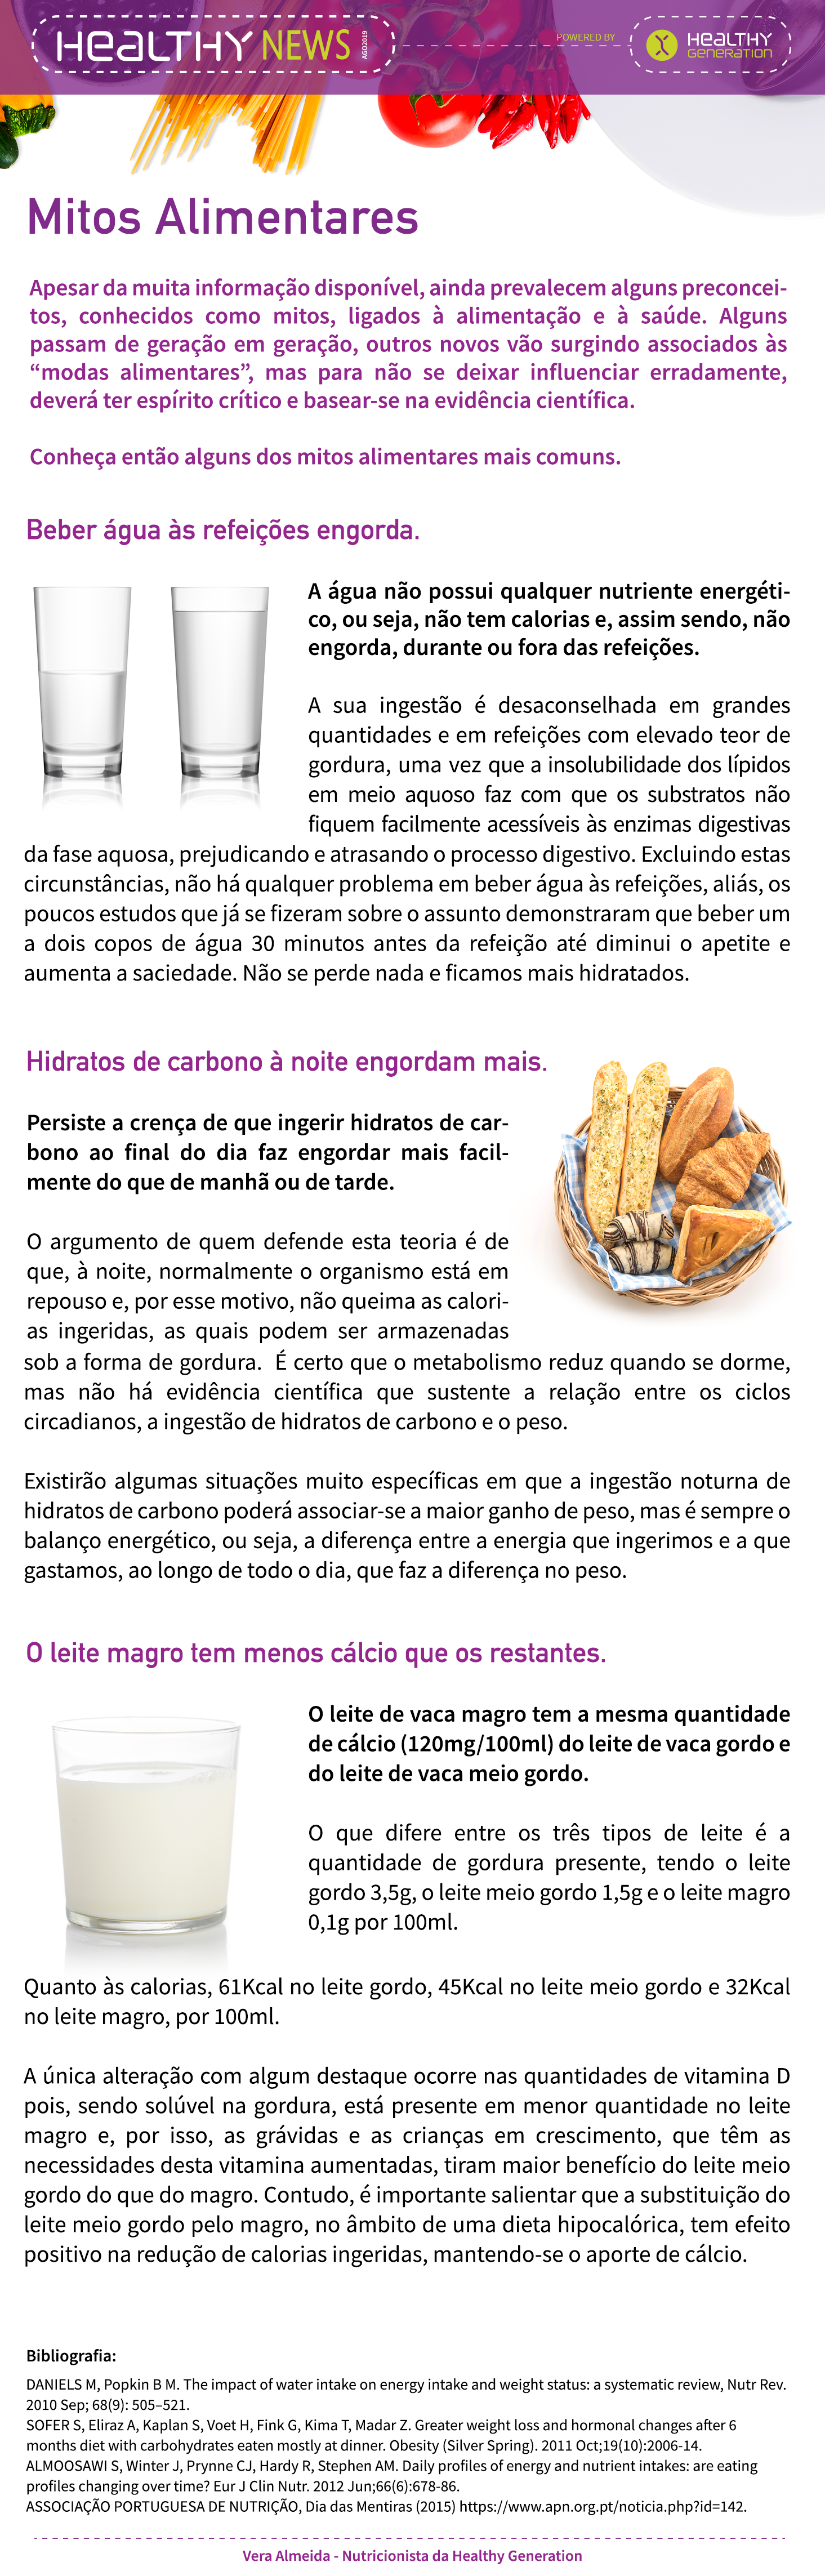 newsletter_mitos_alimentares